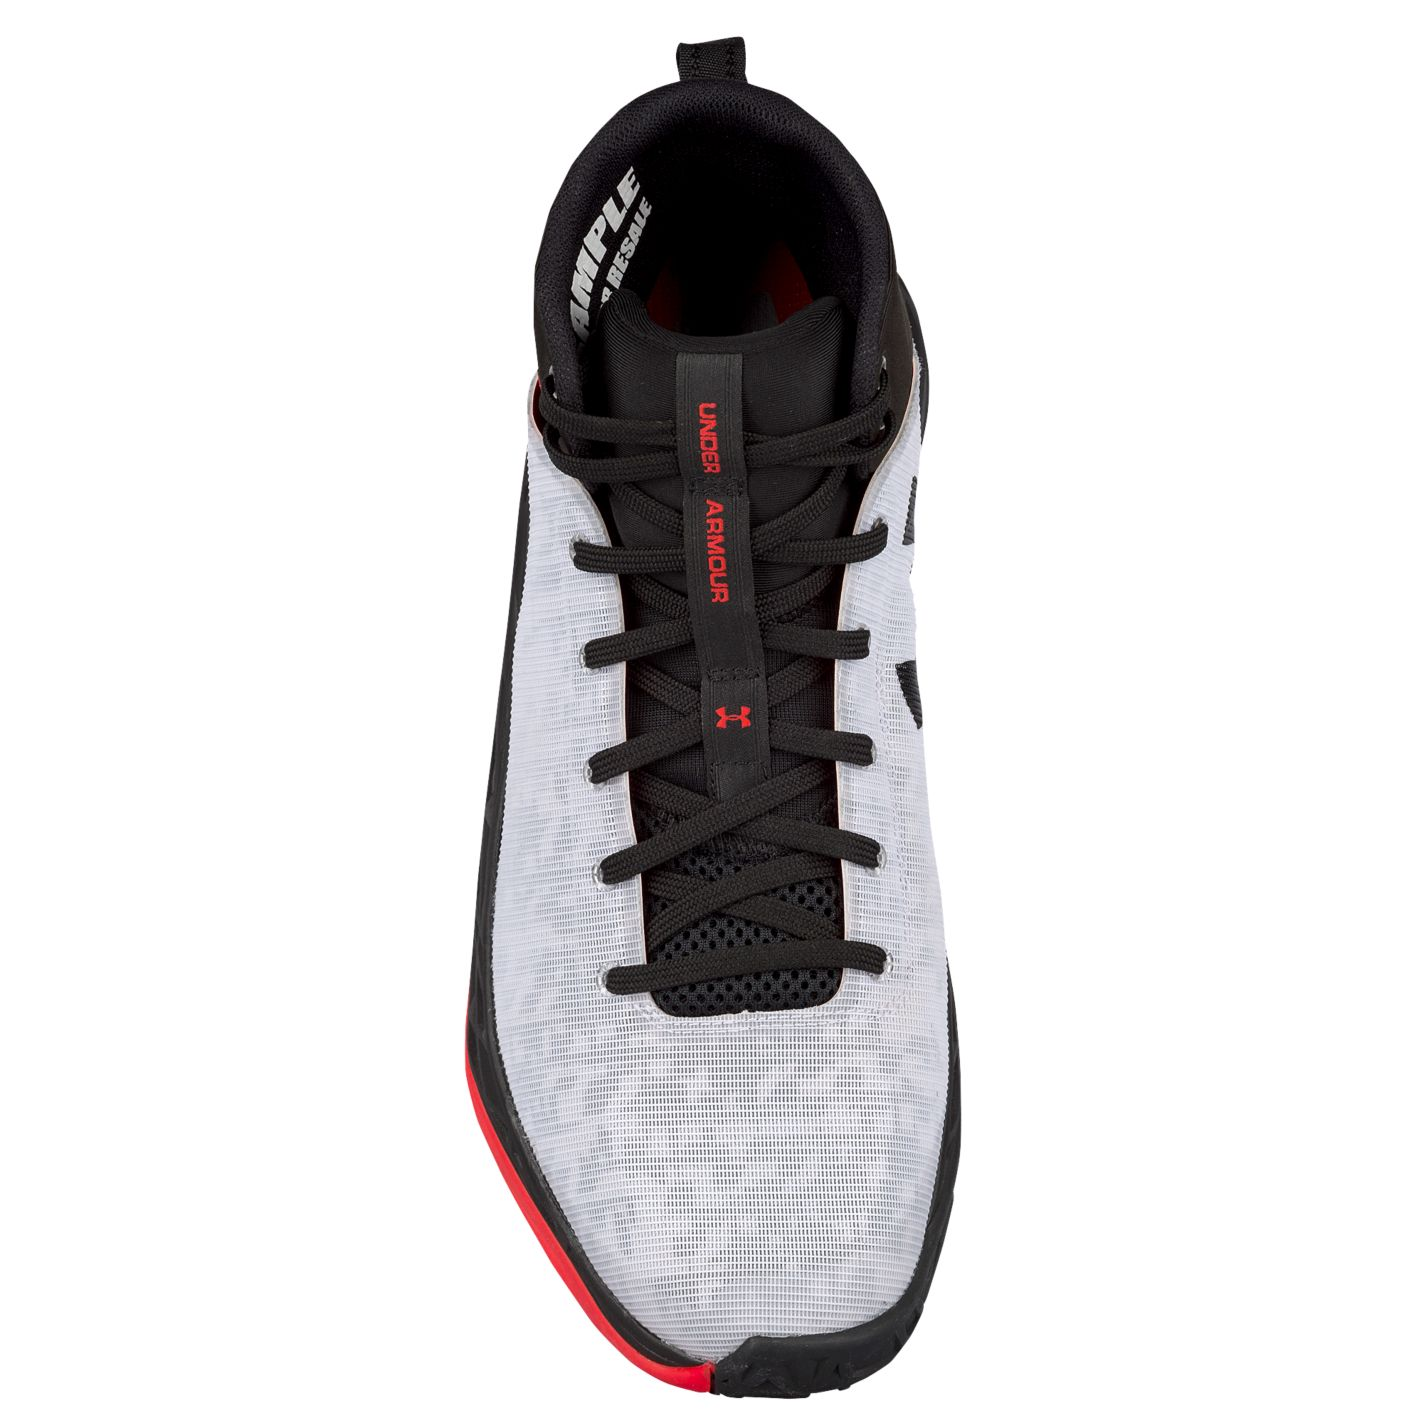 The Under Armour Fire Shot is Available Now 5